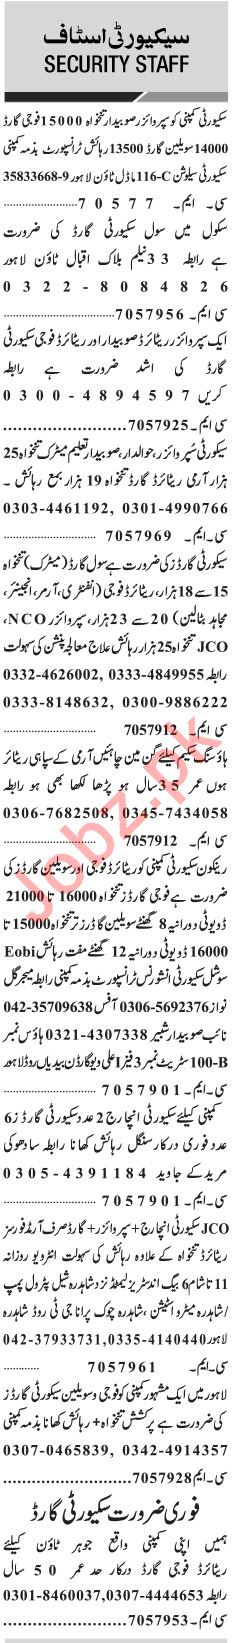 Jang Sunday Classified Ads 23rd Dec 2018 for Security Staff